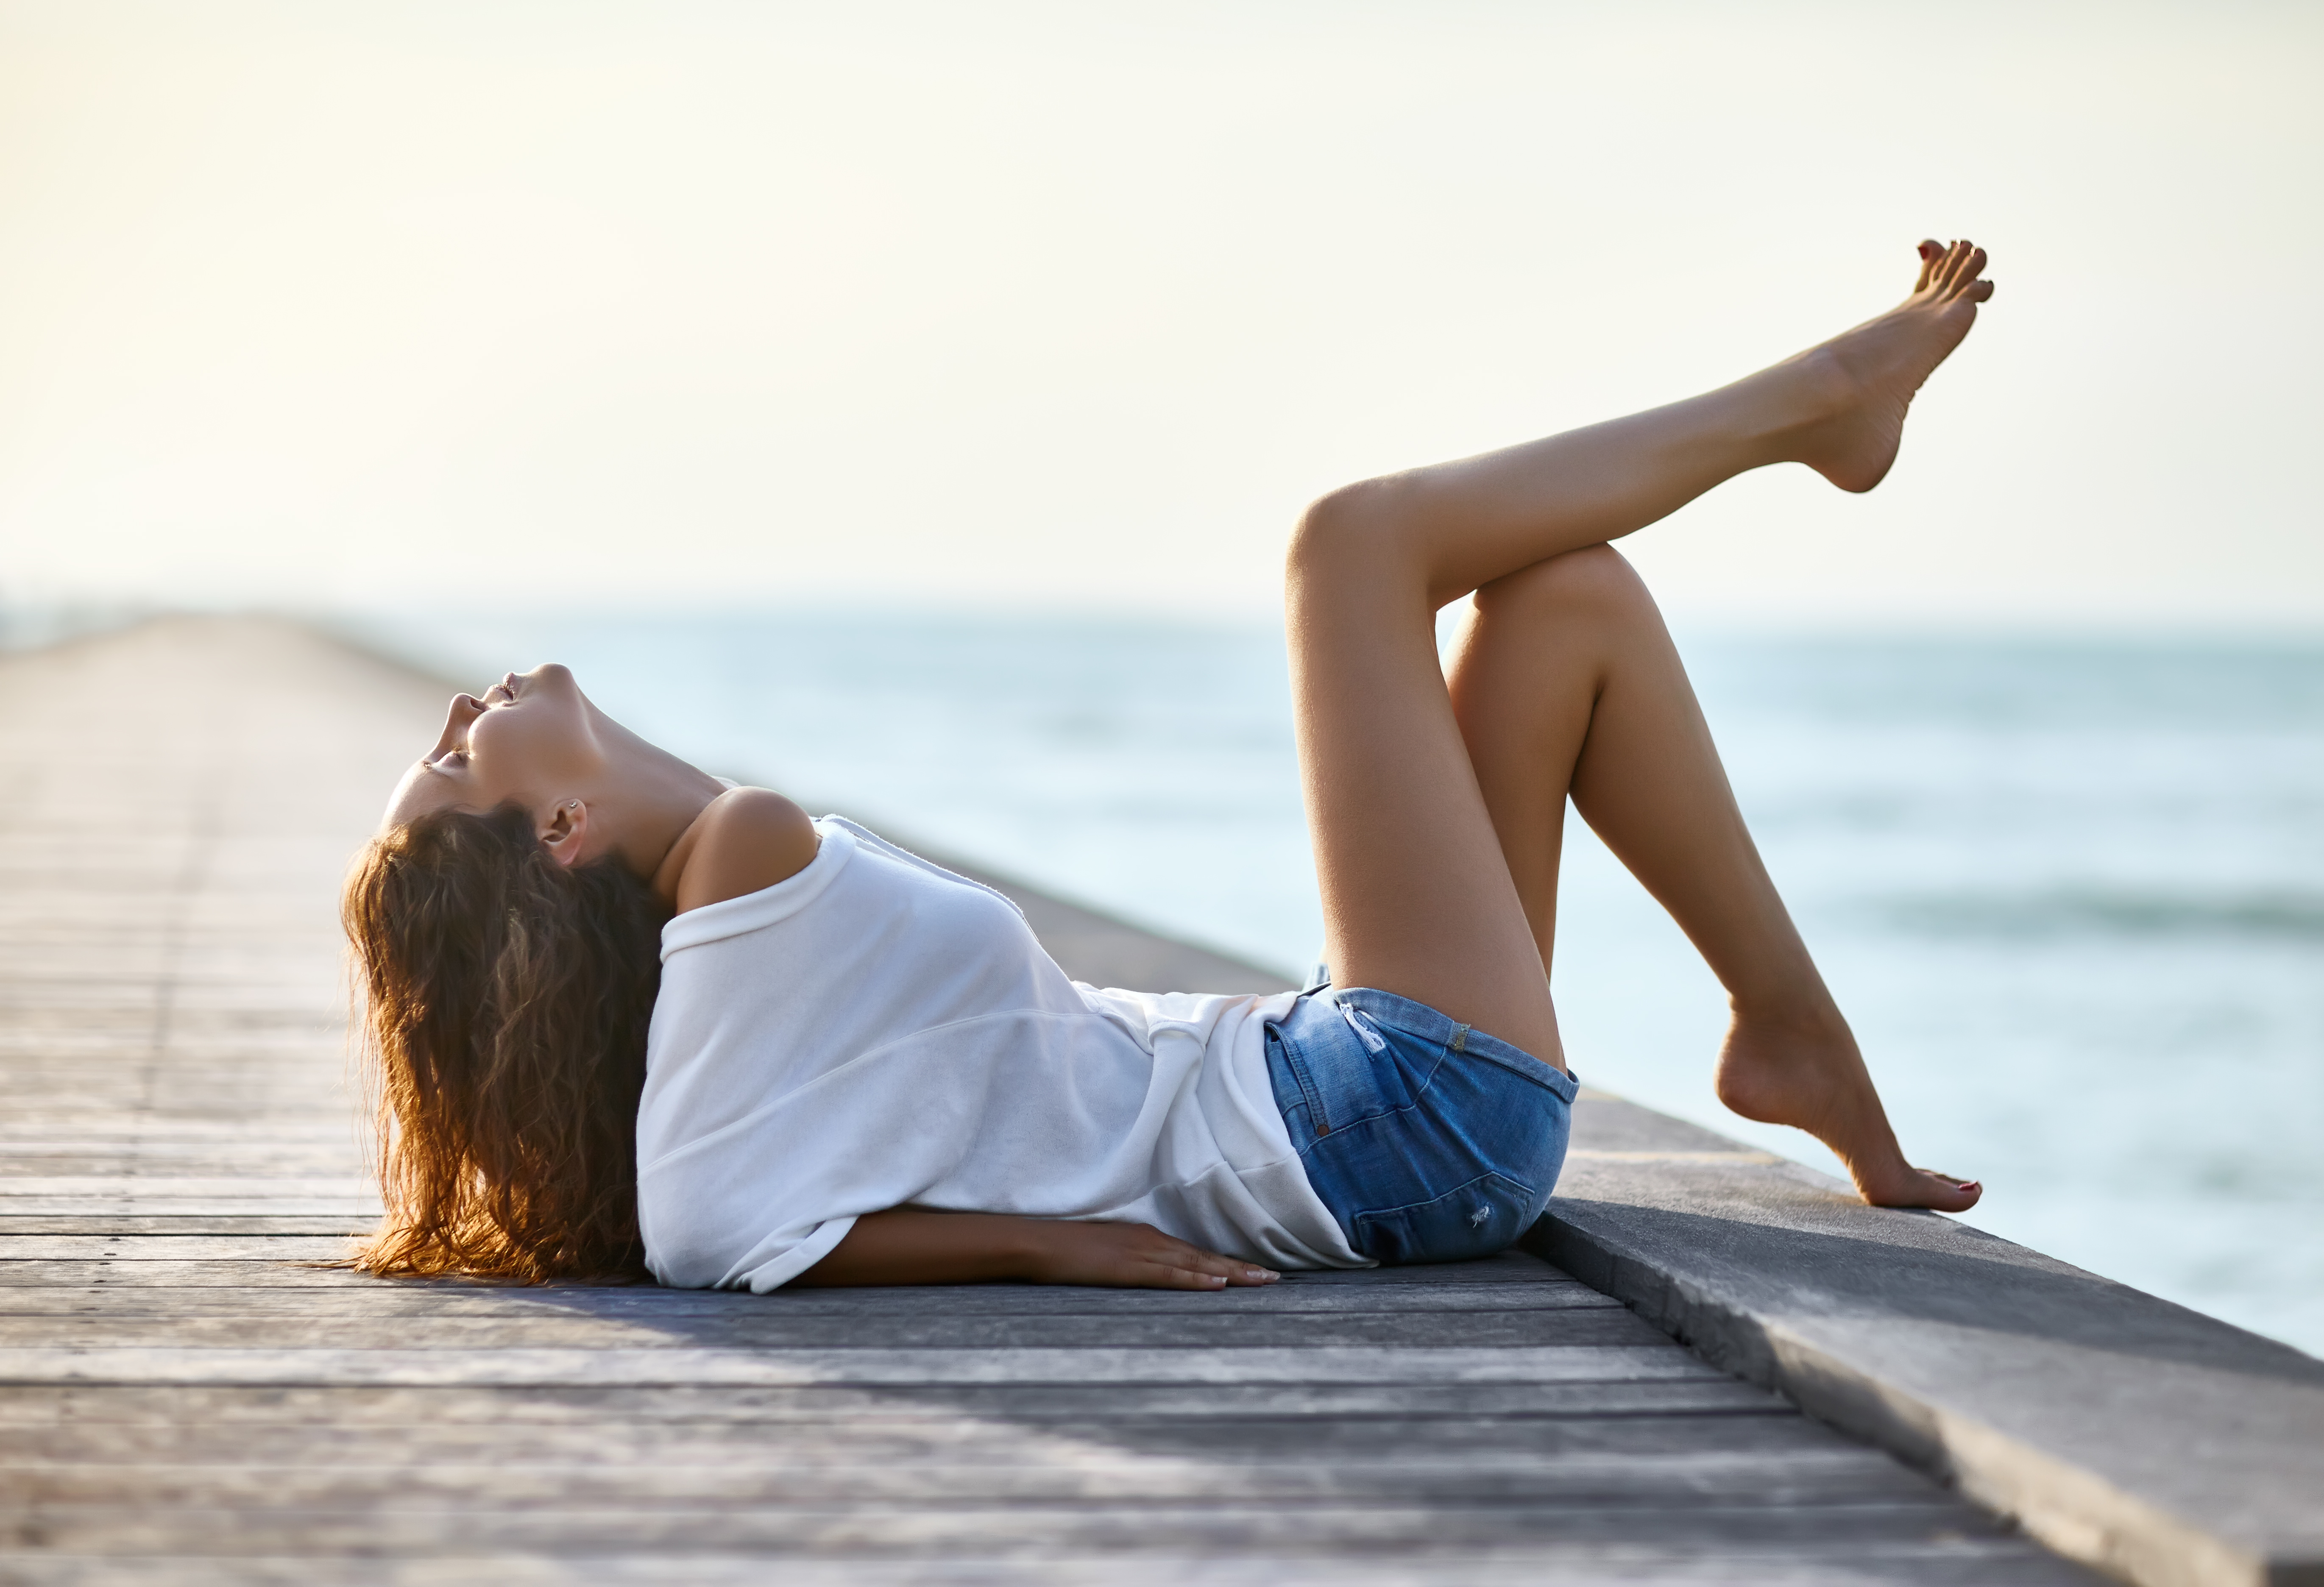 How to get slimmer legs